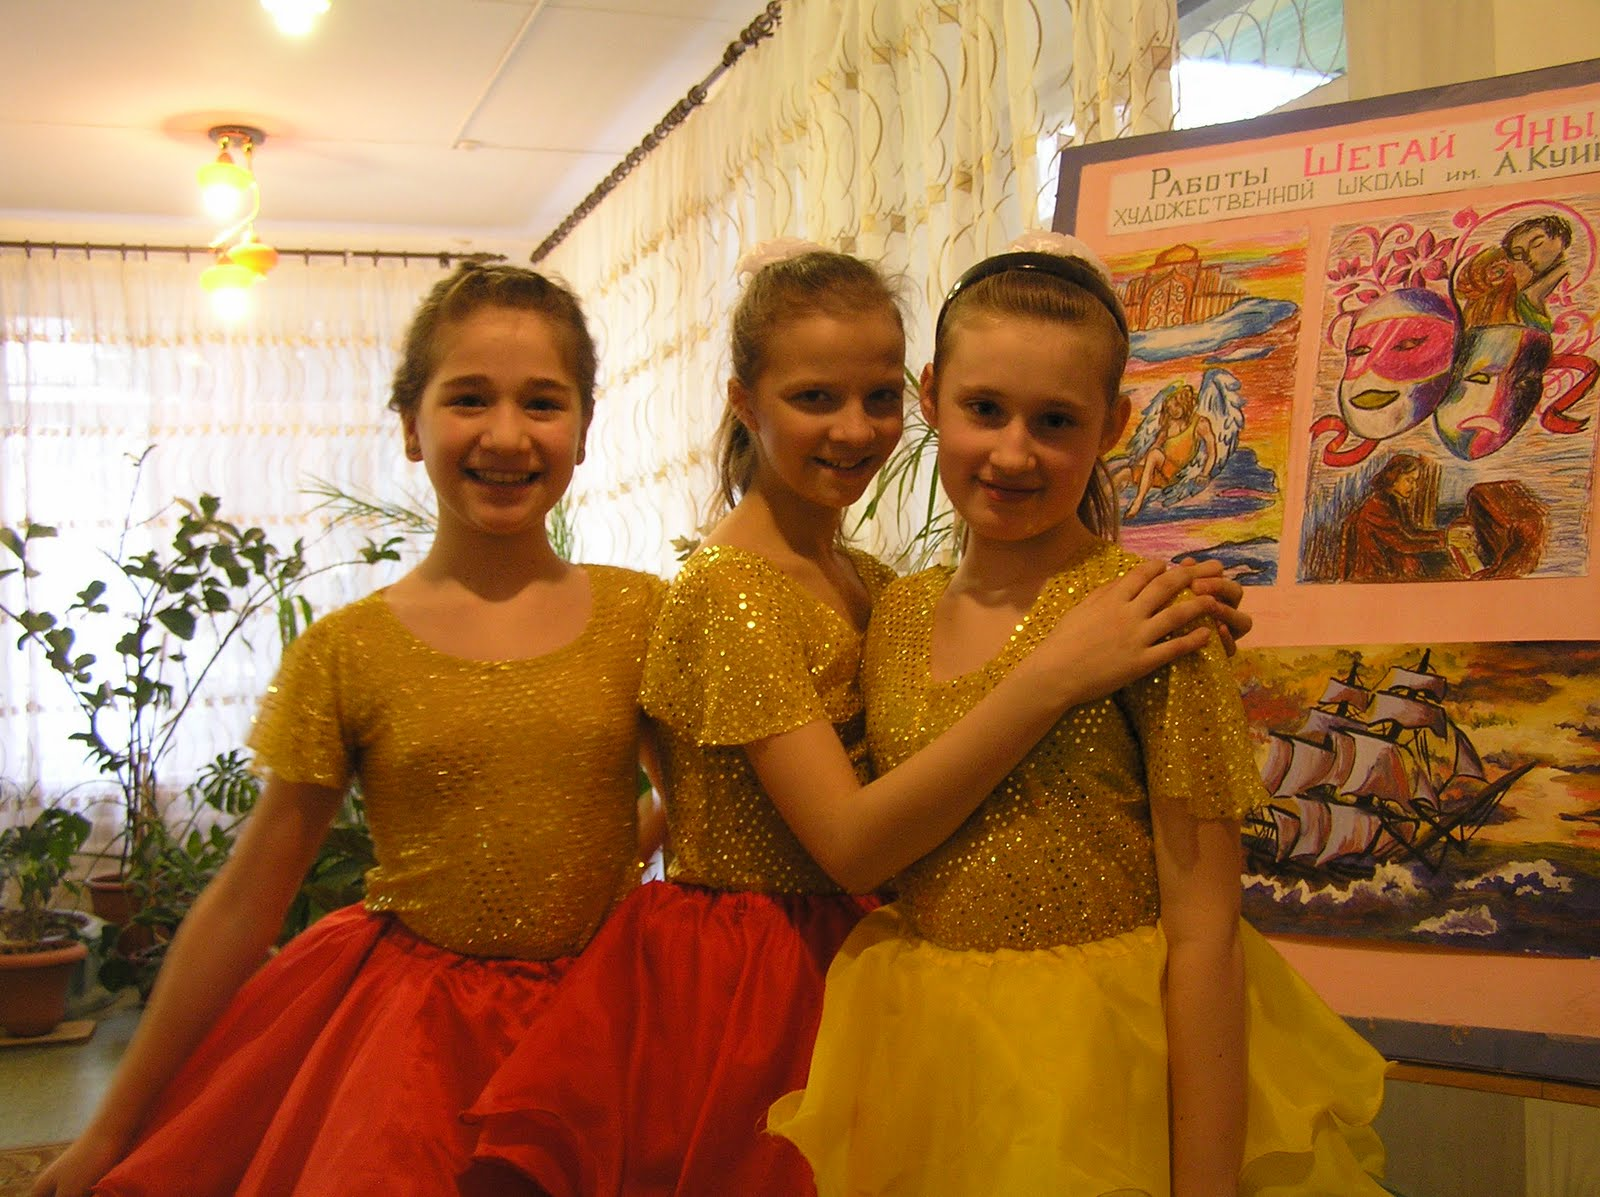 Ukrainian Angels http://echolsinukraine.blogspot.com/2011/04/angel-party.html